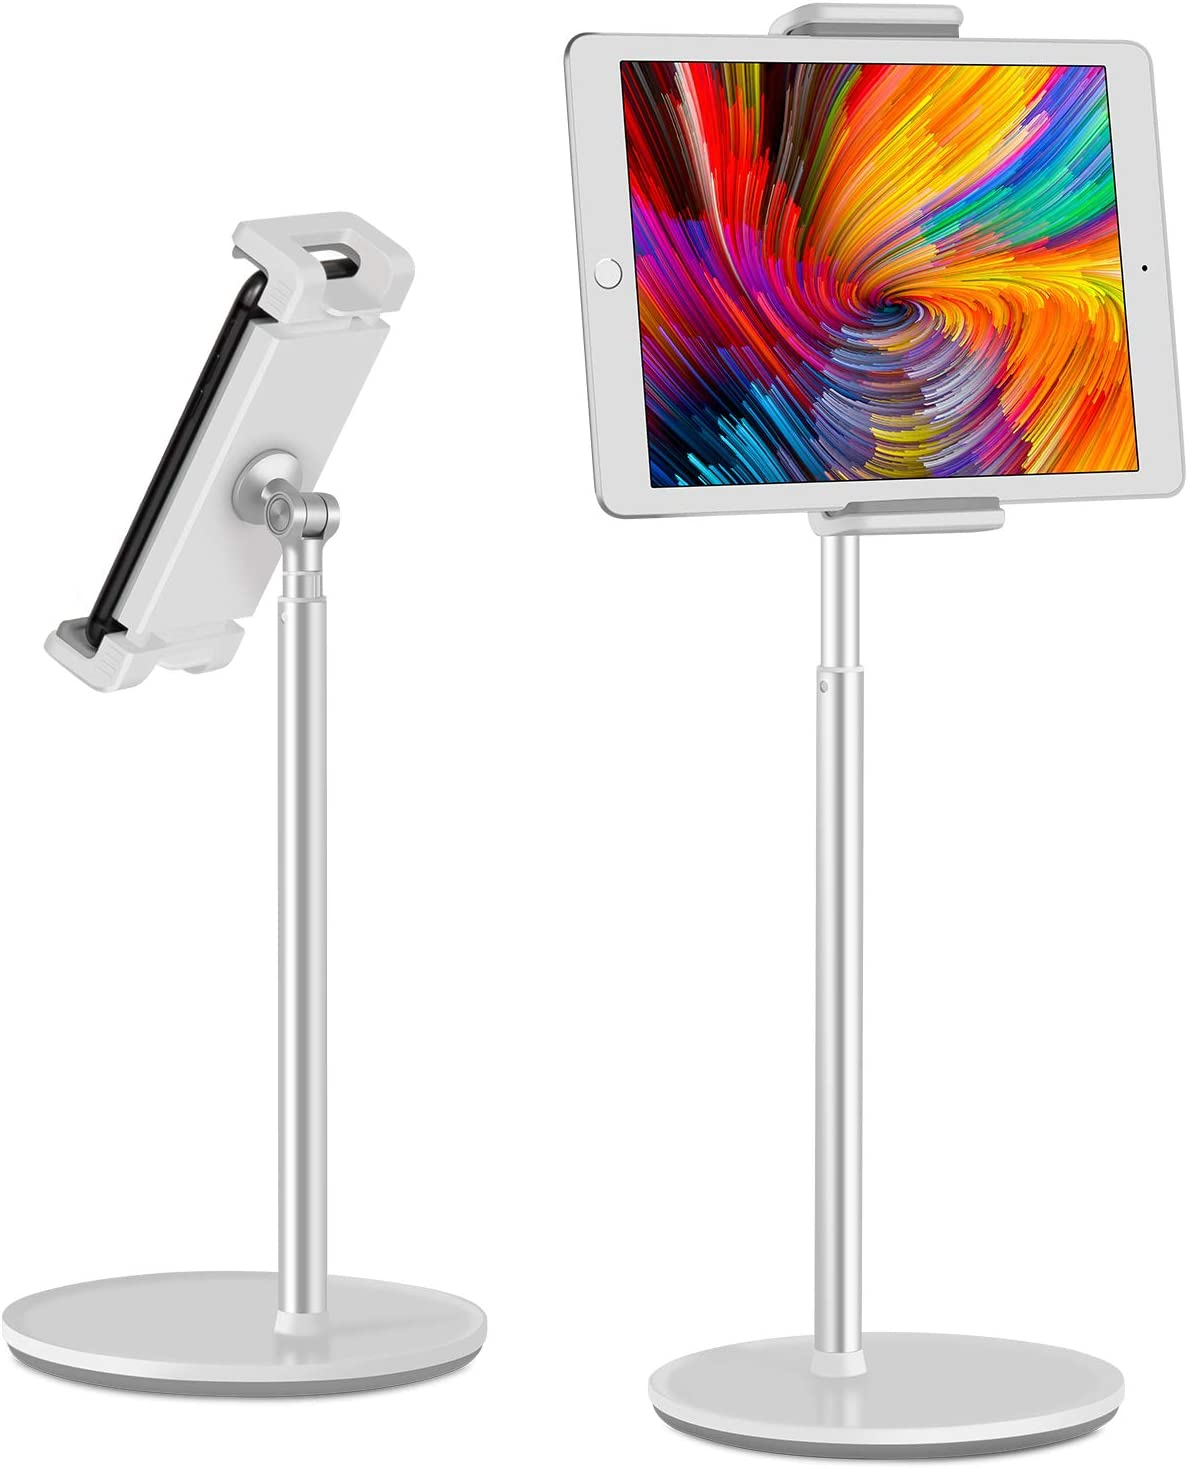 """viozon Tablet Phone Stand Holder, Height 360 Degree Angle Adjustable, Aluminum Desktop Stand, Compatible with 4.5-6.5"""" Cellphone and 7-13"""" Tablet Such as iPhone iPad Pro Air Mini, Samsung, Kindle"""